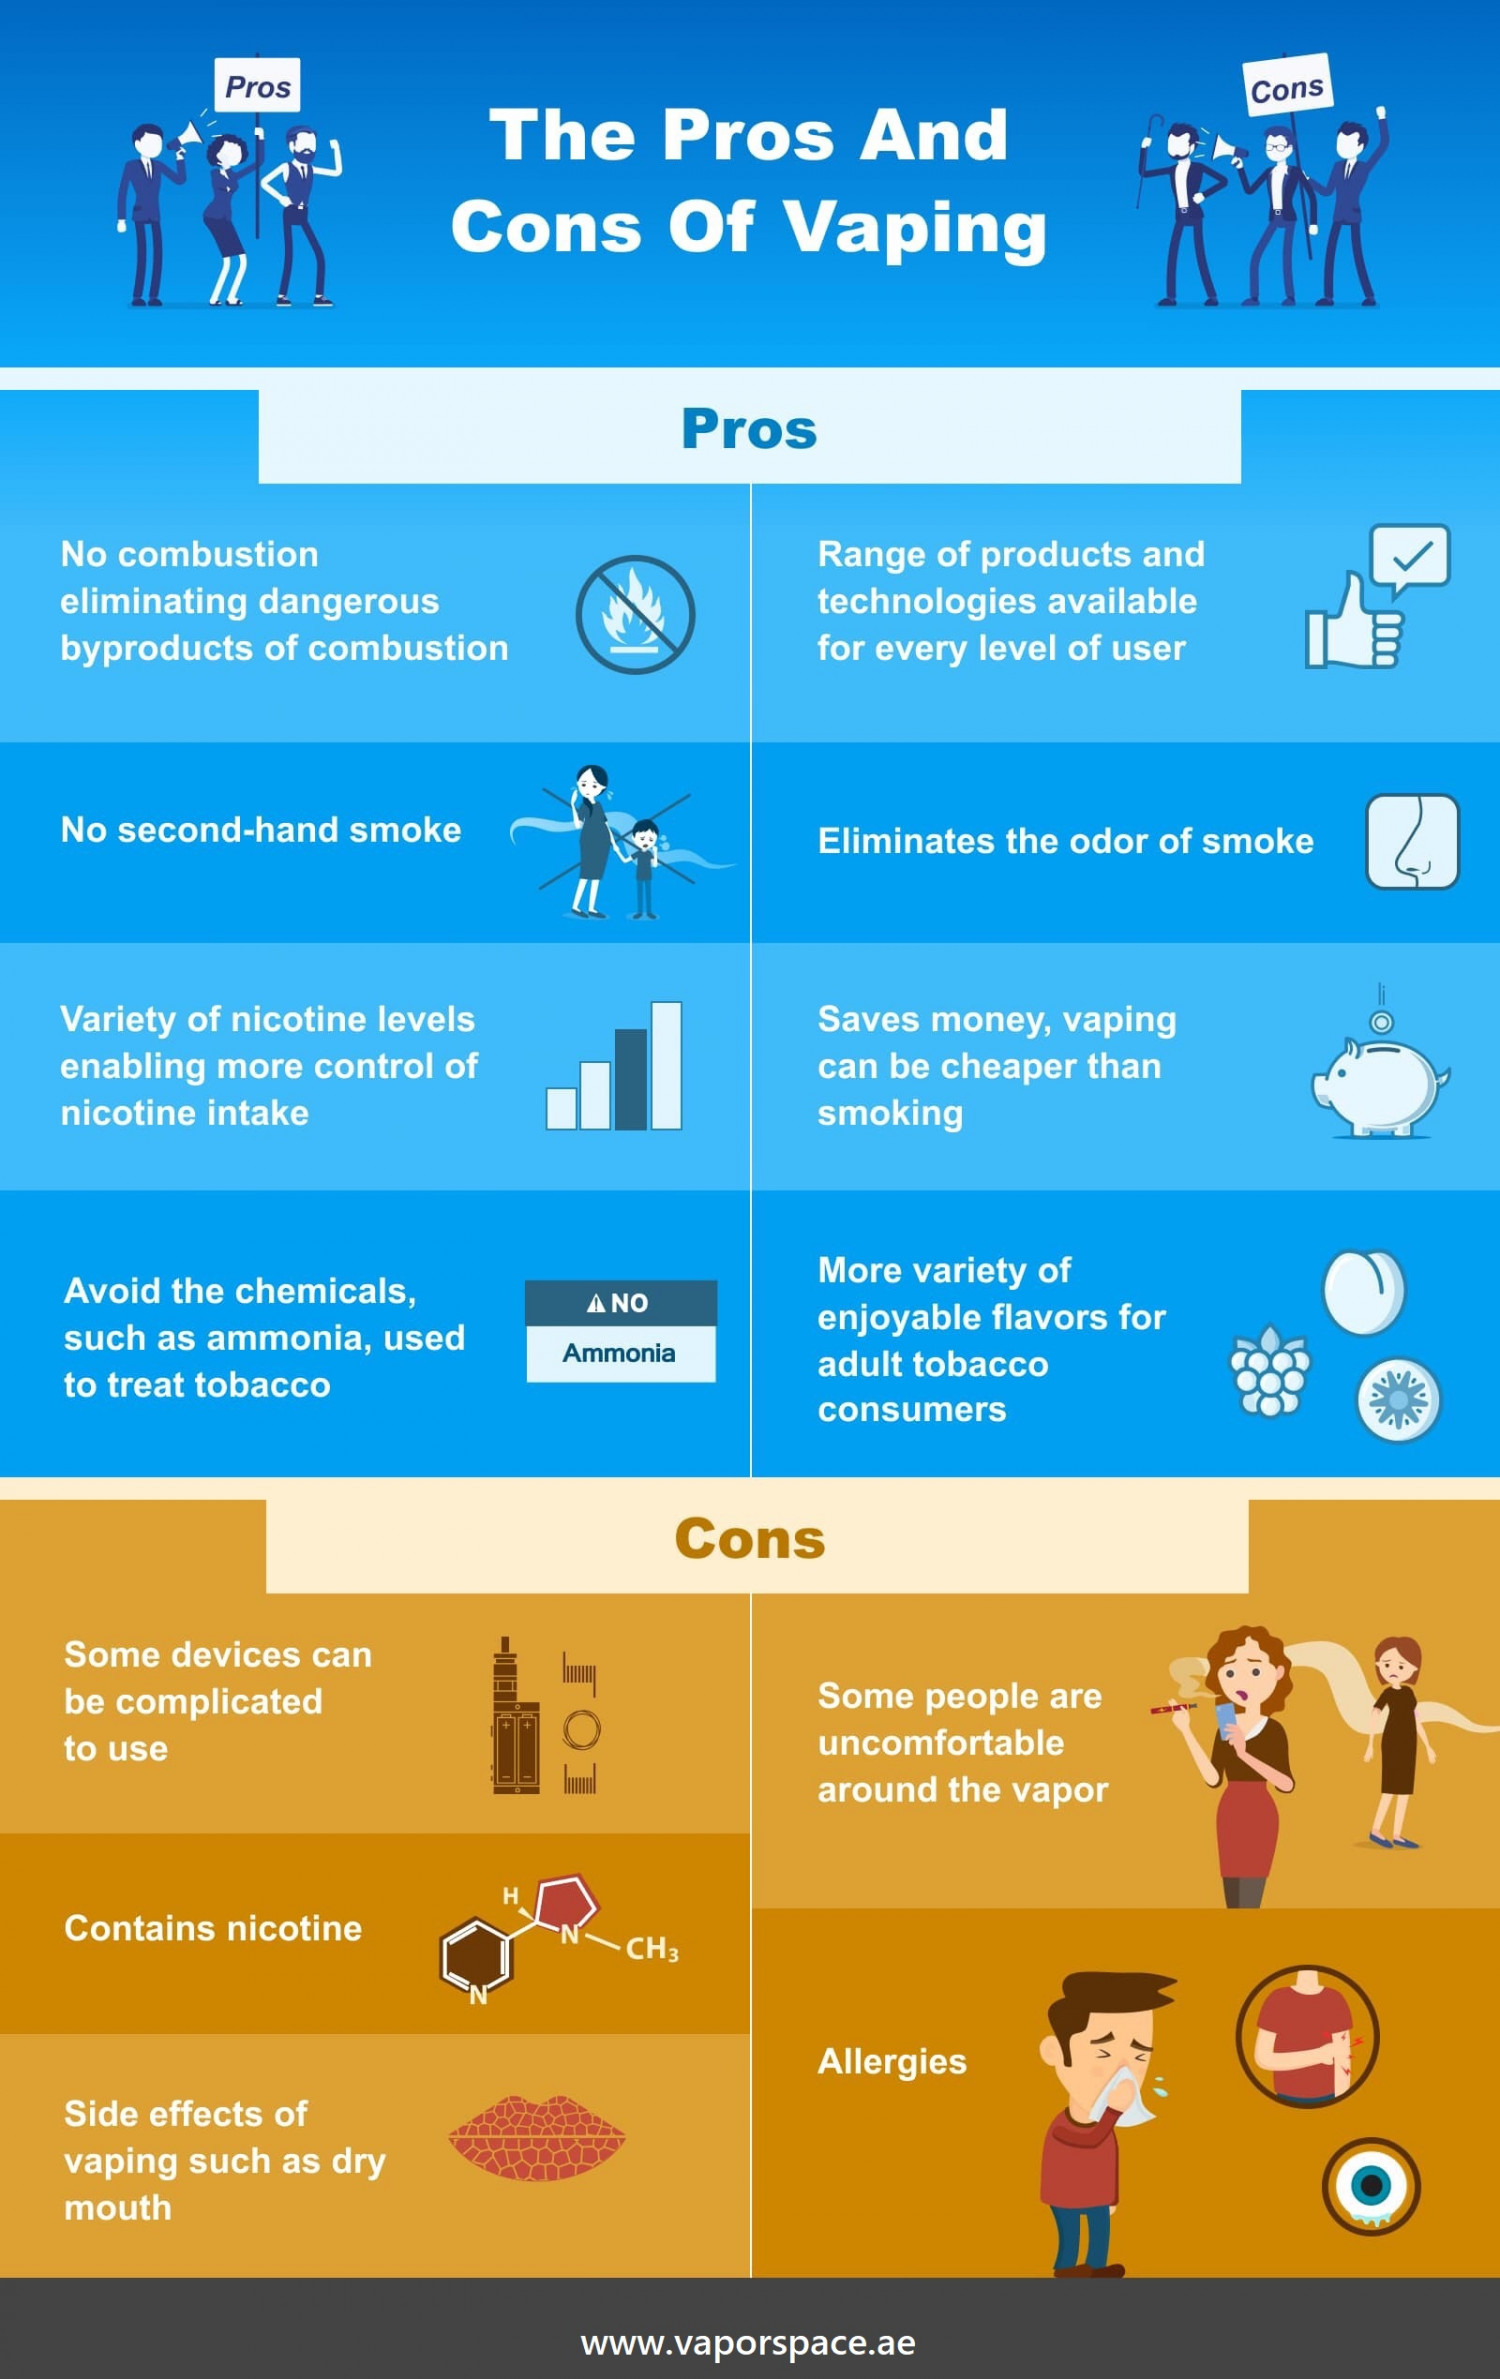 10 pros and cons of vaping you need to know Infographic